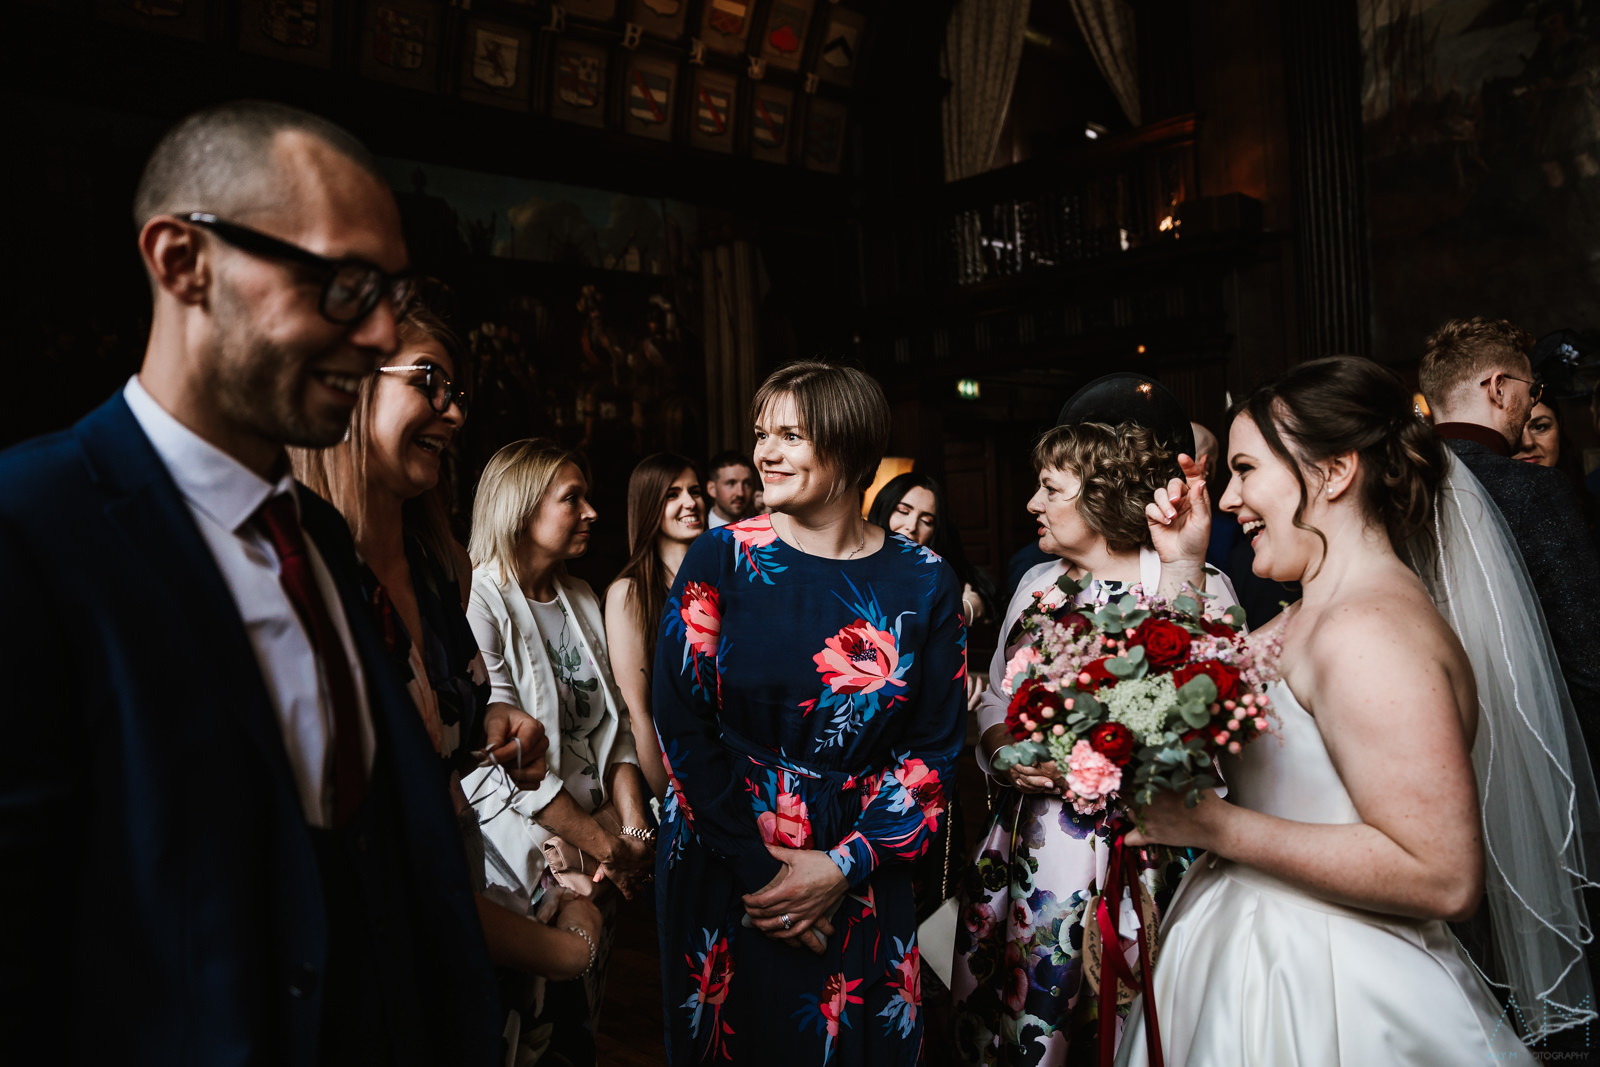 Wedding guests in the Great Hall